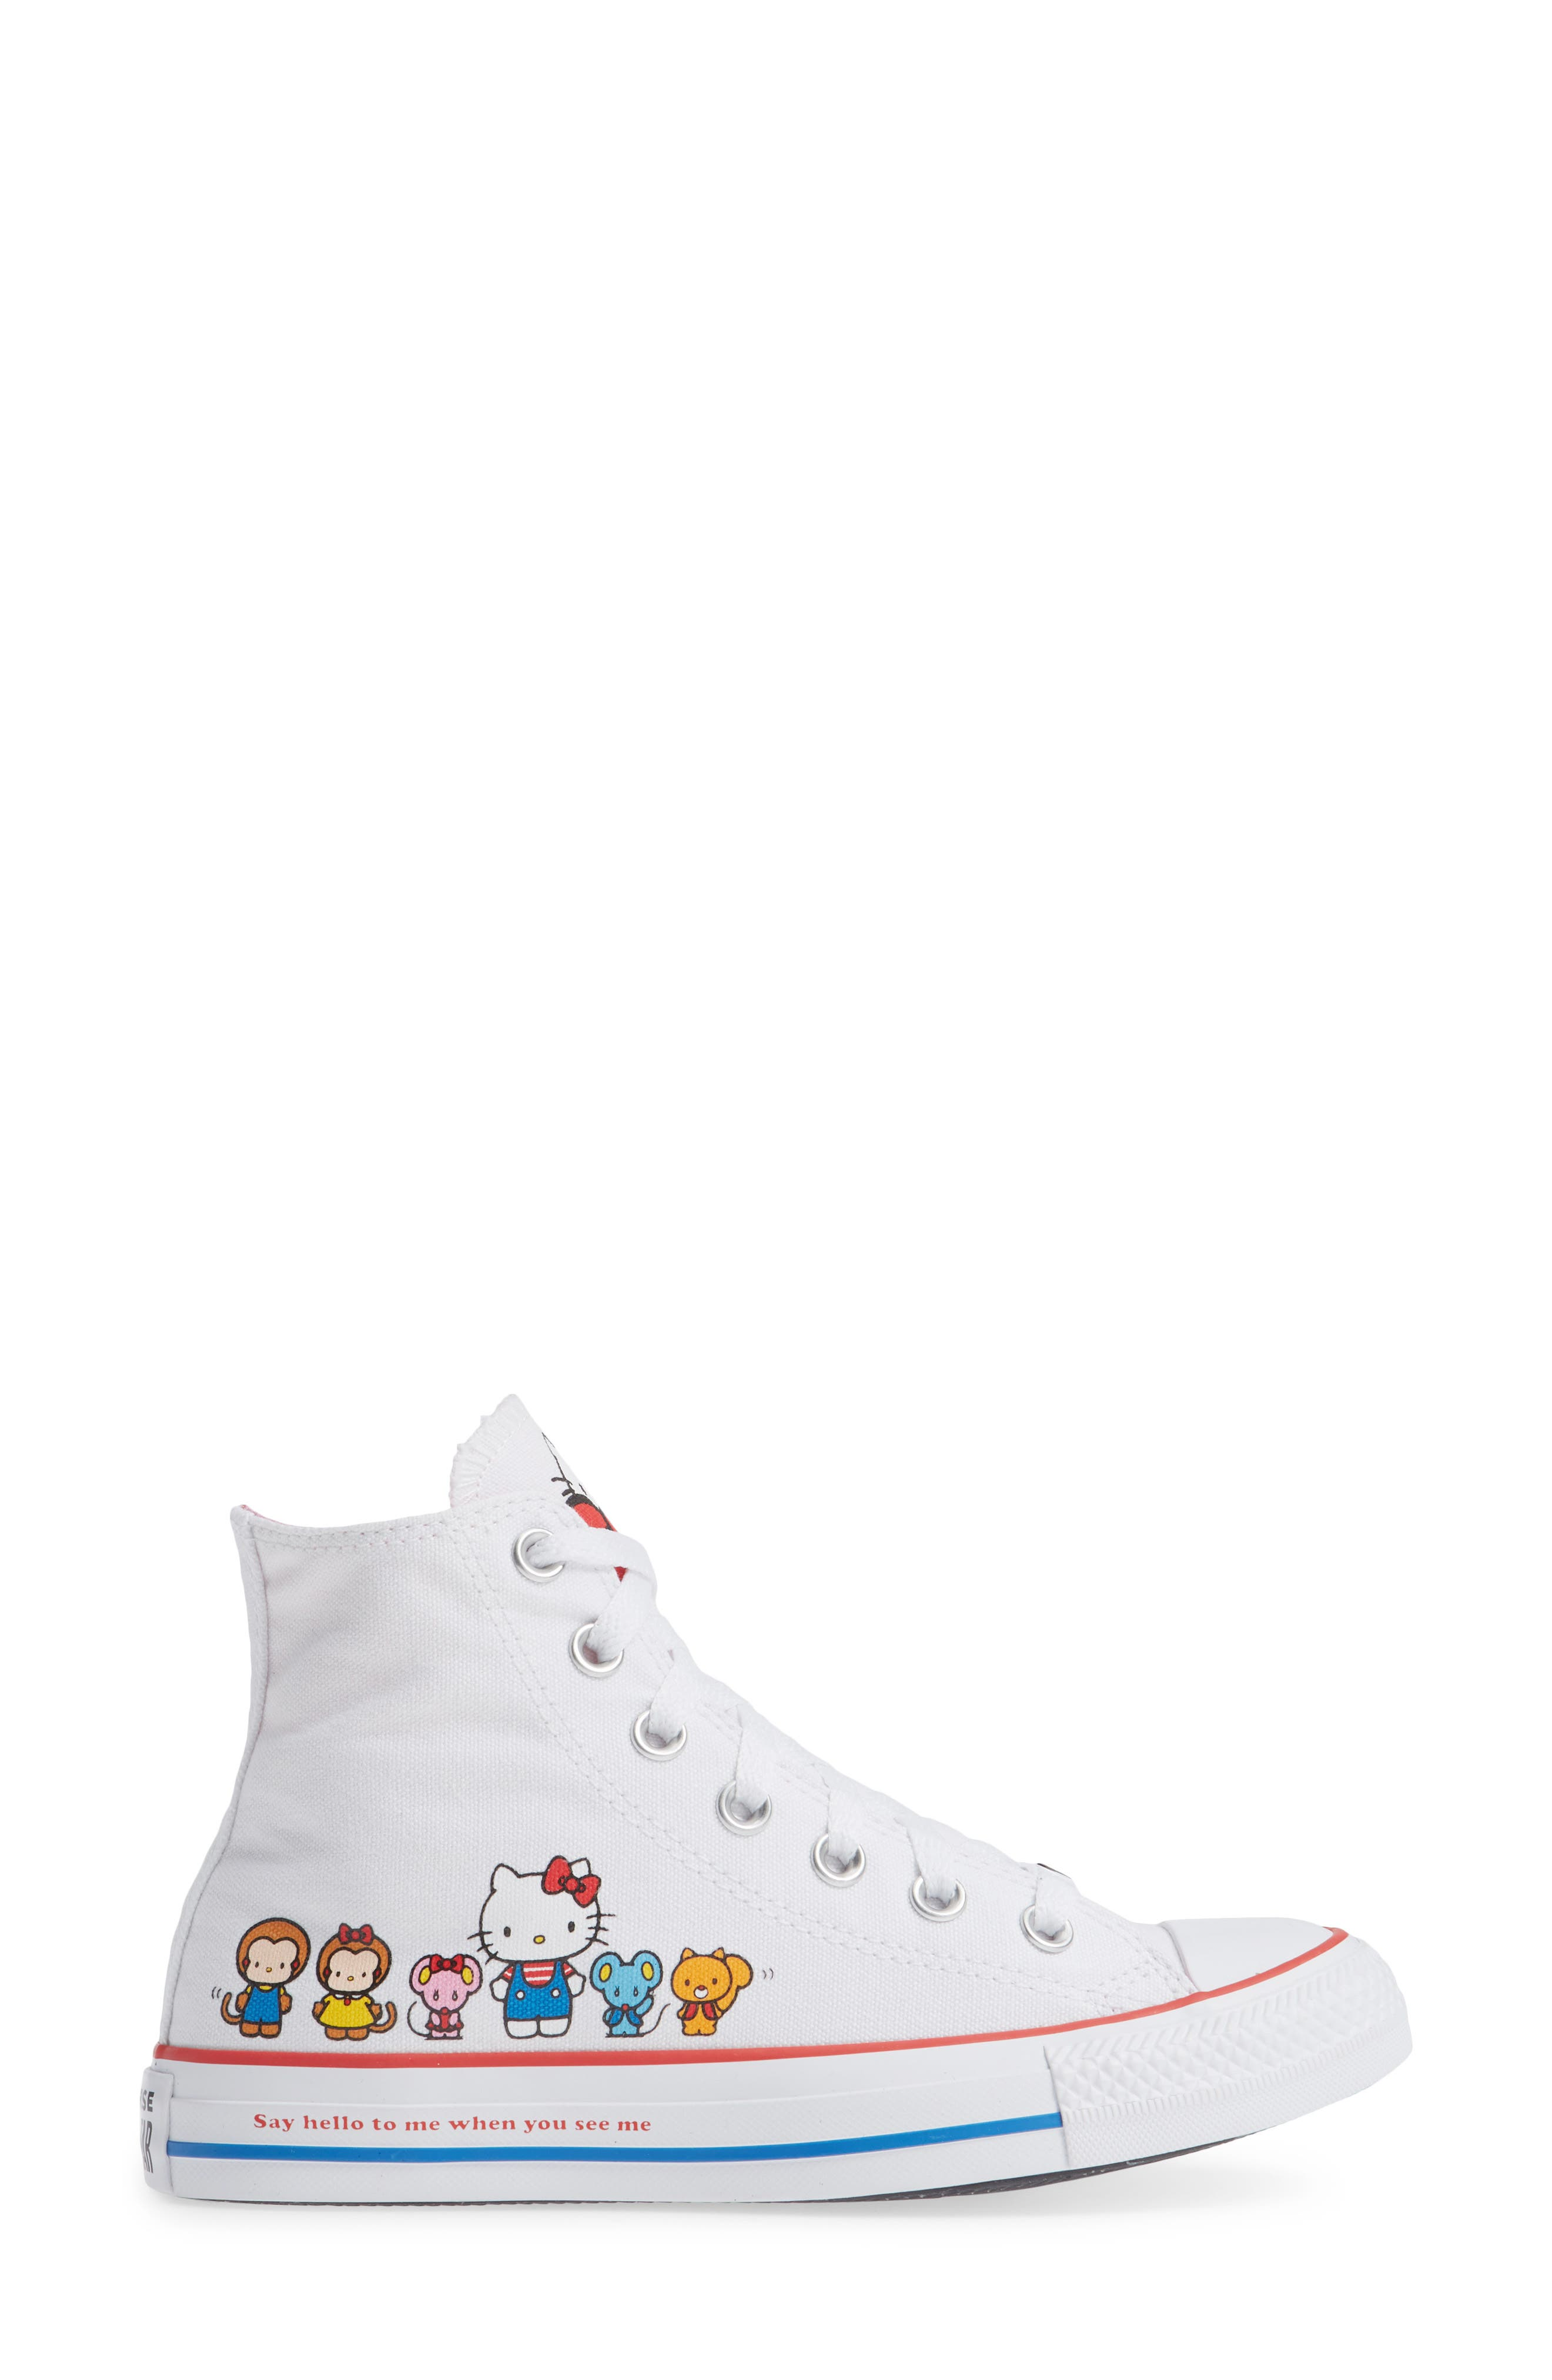 Chuck Taylor<sup>®</sup> All Star<sup>®</sup> Hello Kitty High Top Sneaker,                             Alternate thumbnail 3, color,                             102